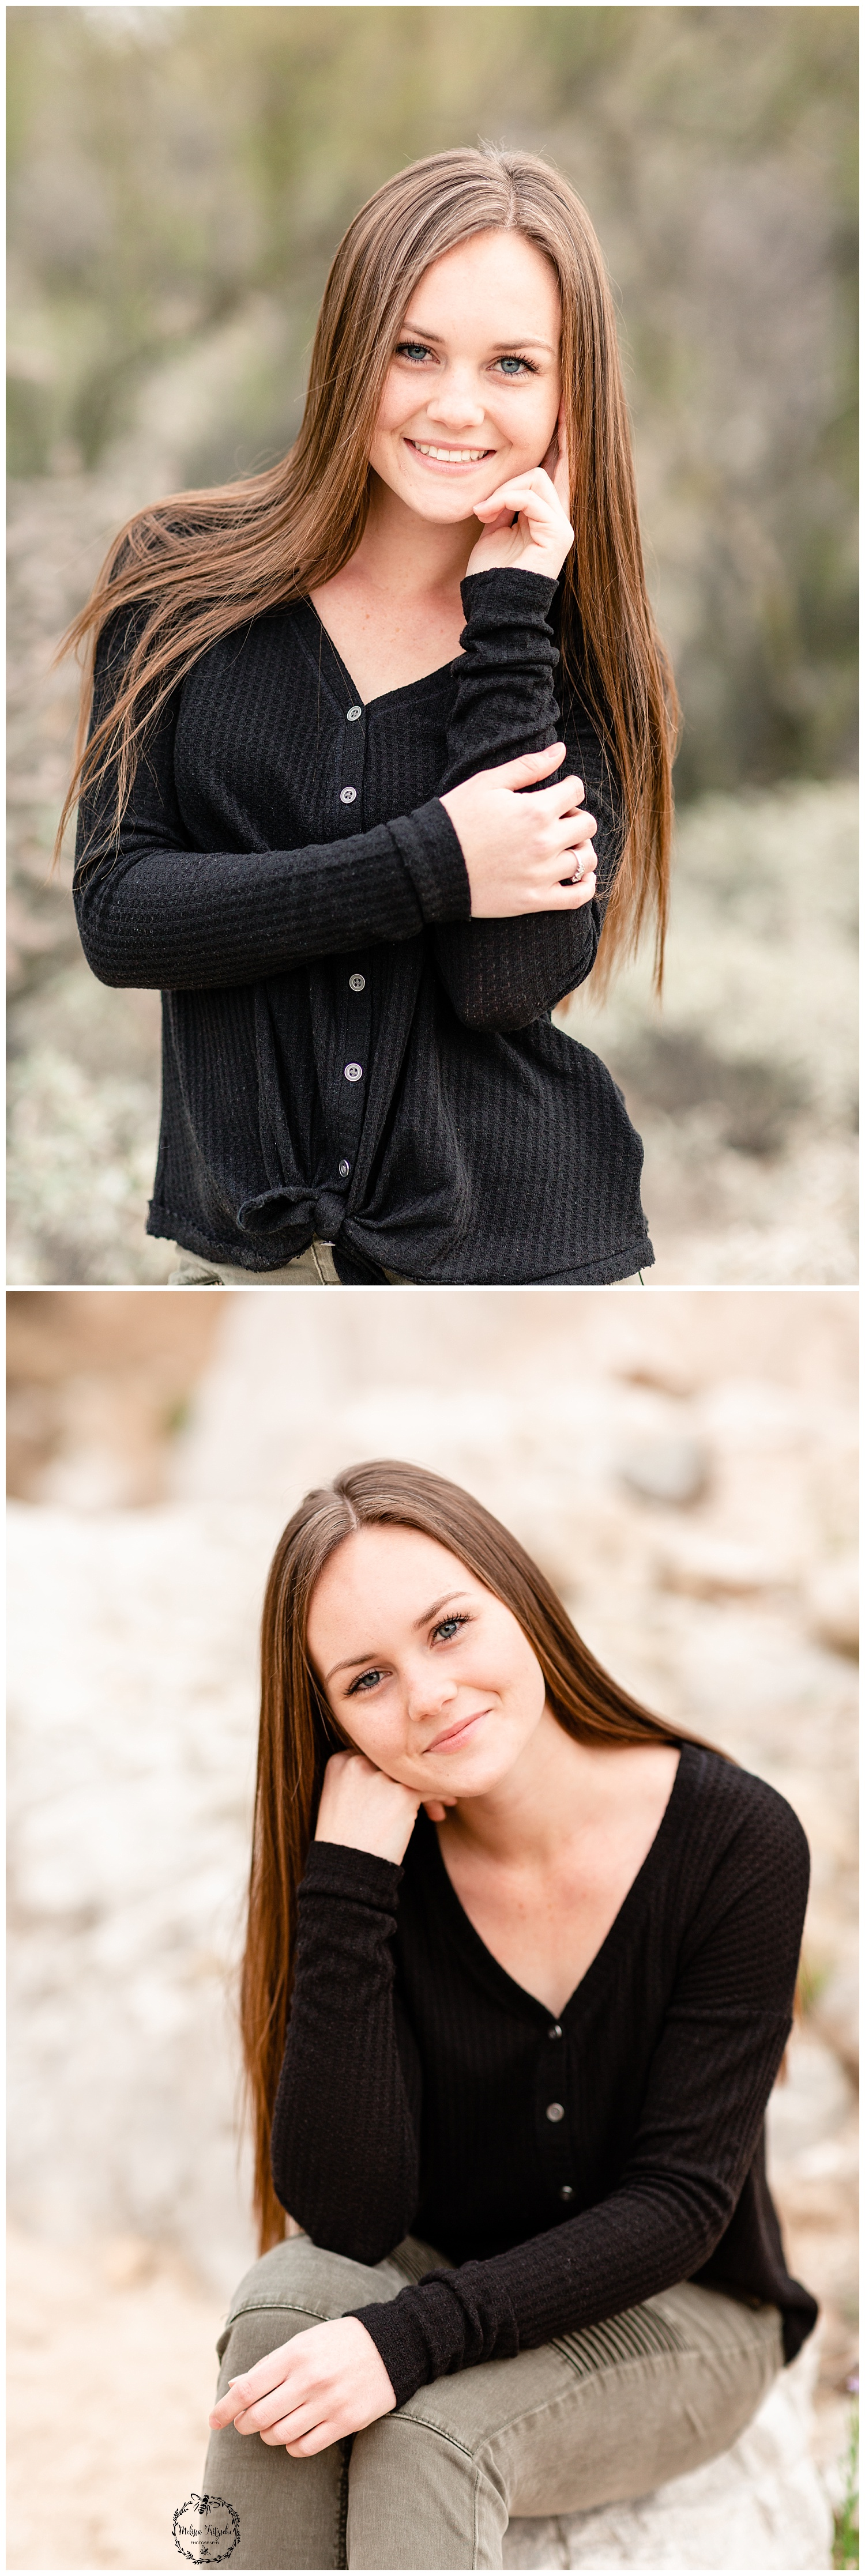 Emily Senior Session (20).jpg